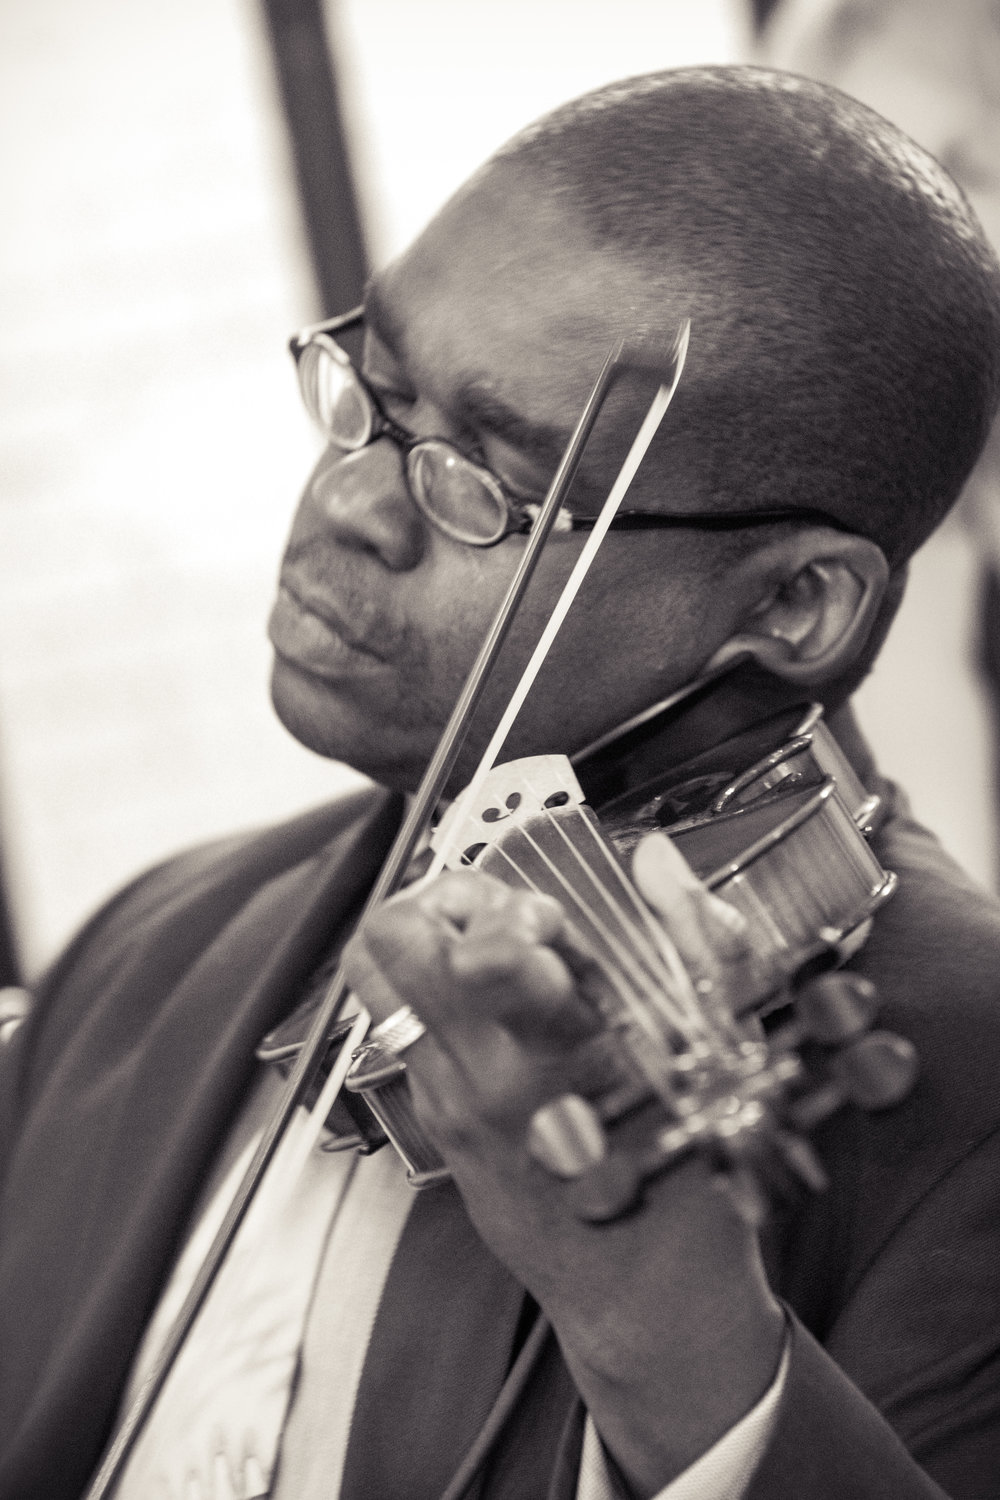 Derek Reeves Principal Violist for the Fort Wayne Philharmonic